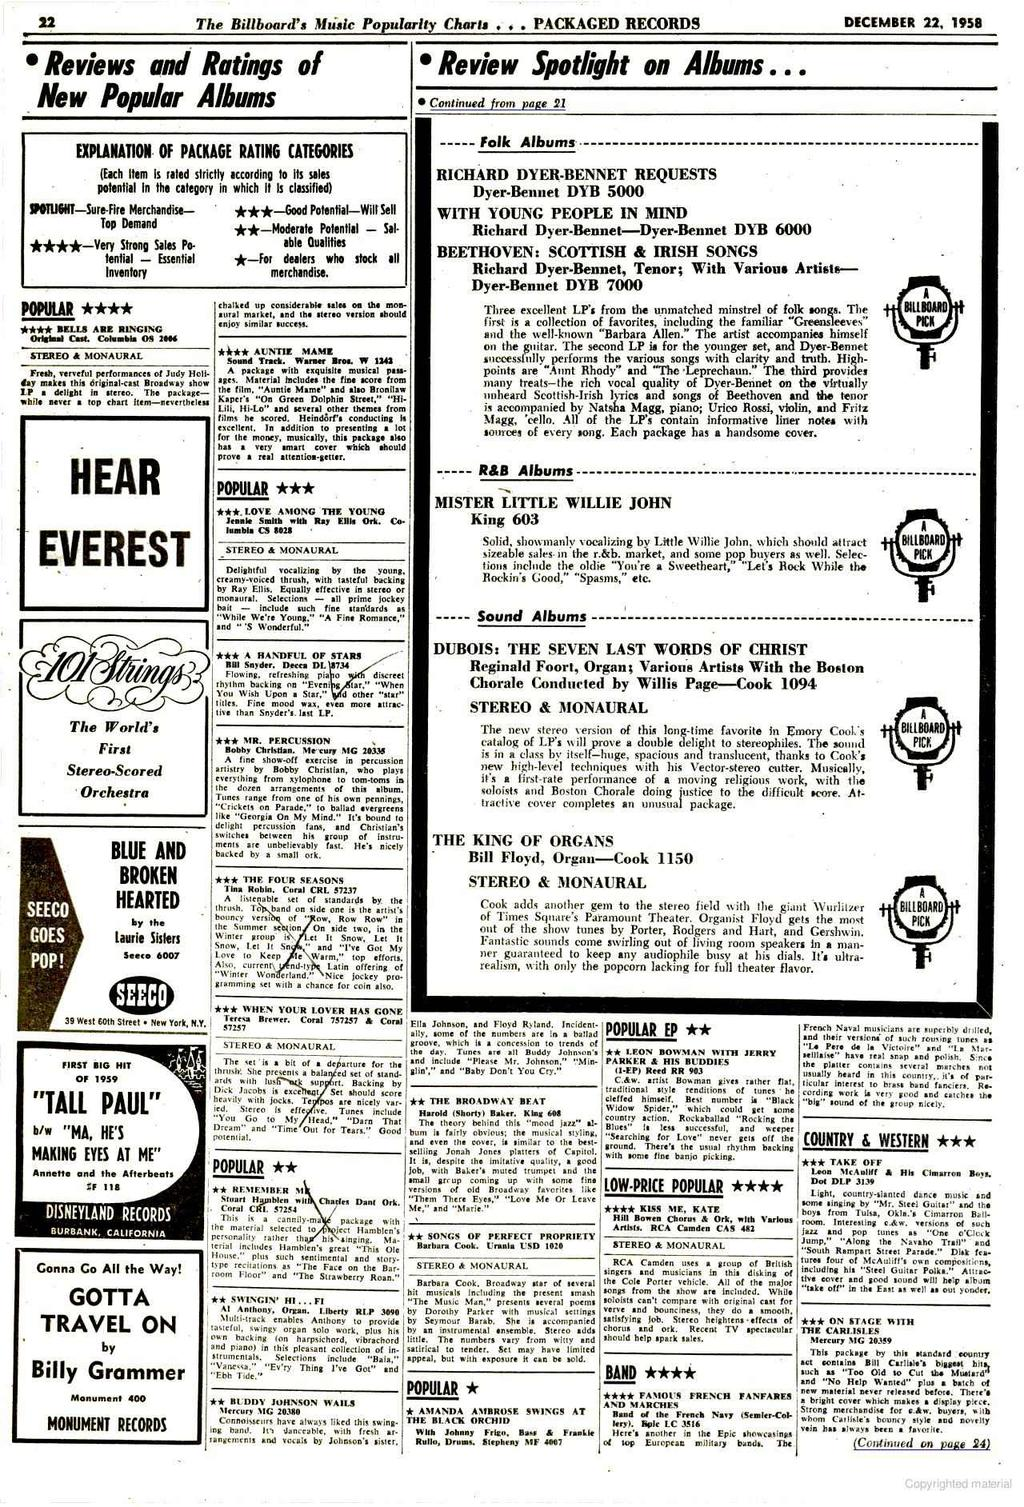 Capitol hills distaff brass pdf wwwamericanradiohistorycom 22 the billboards music popularity charta packaged records december 22 1958 reviews and ratings fandeluxe Gallery